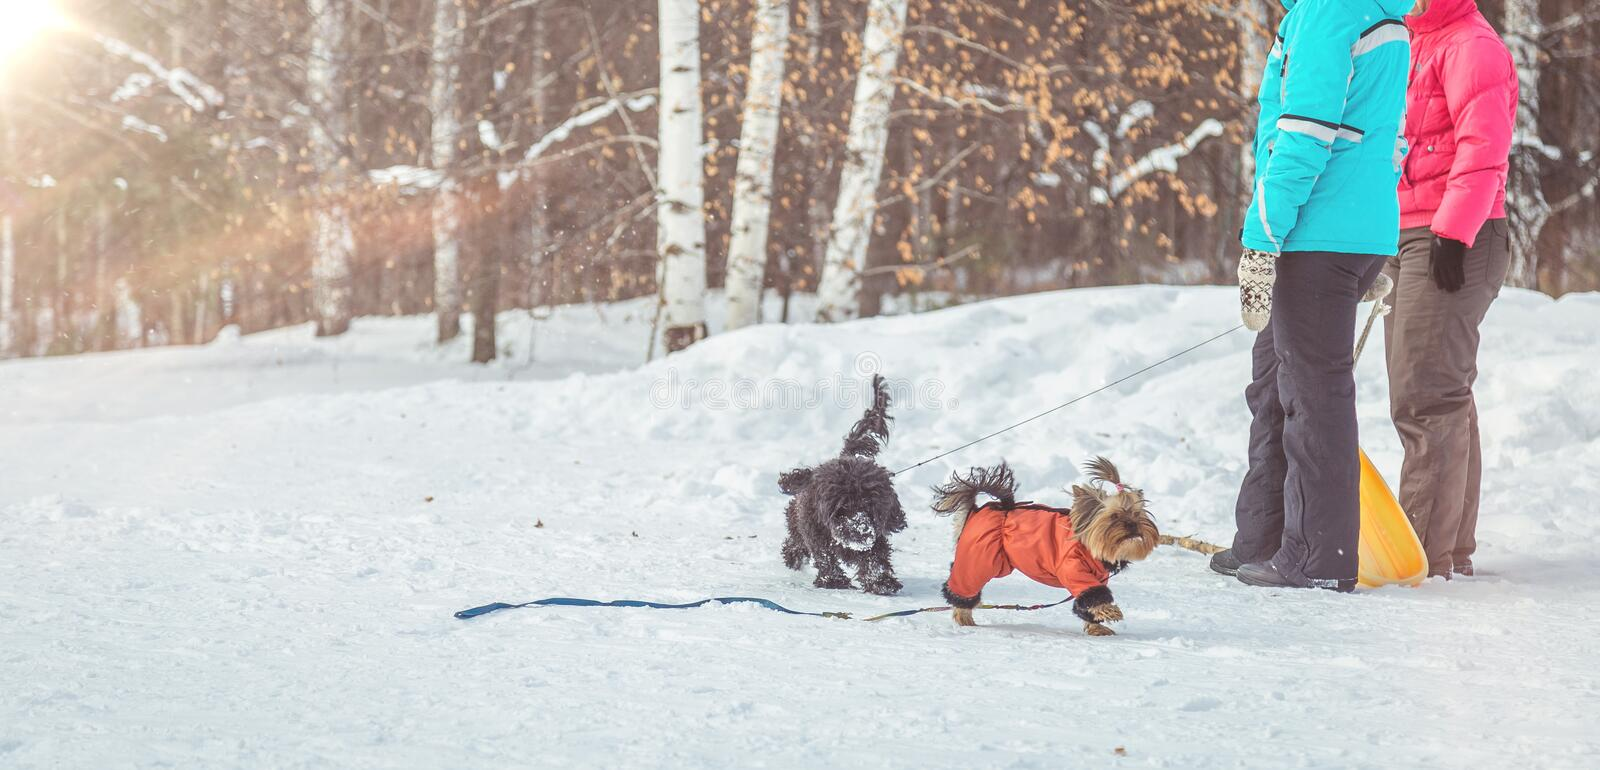 Dogs running around in the winter forest royalty free stock images